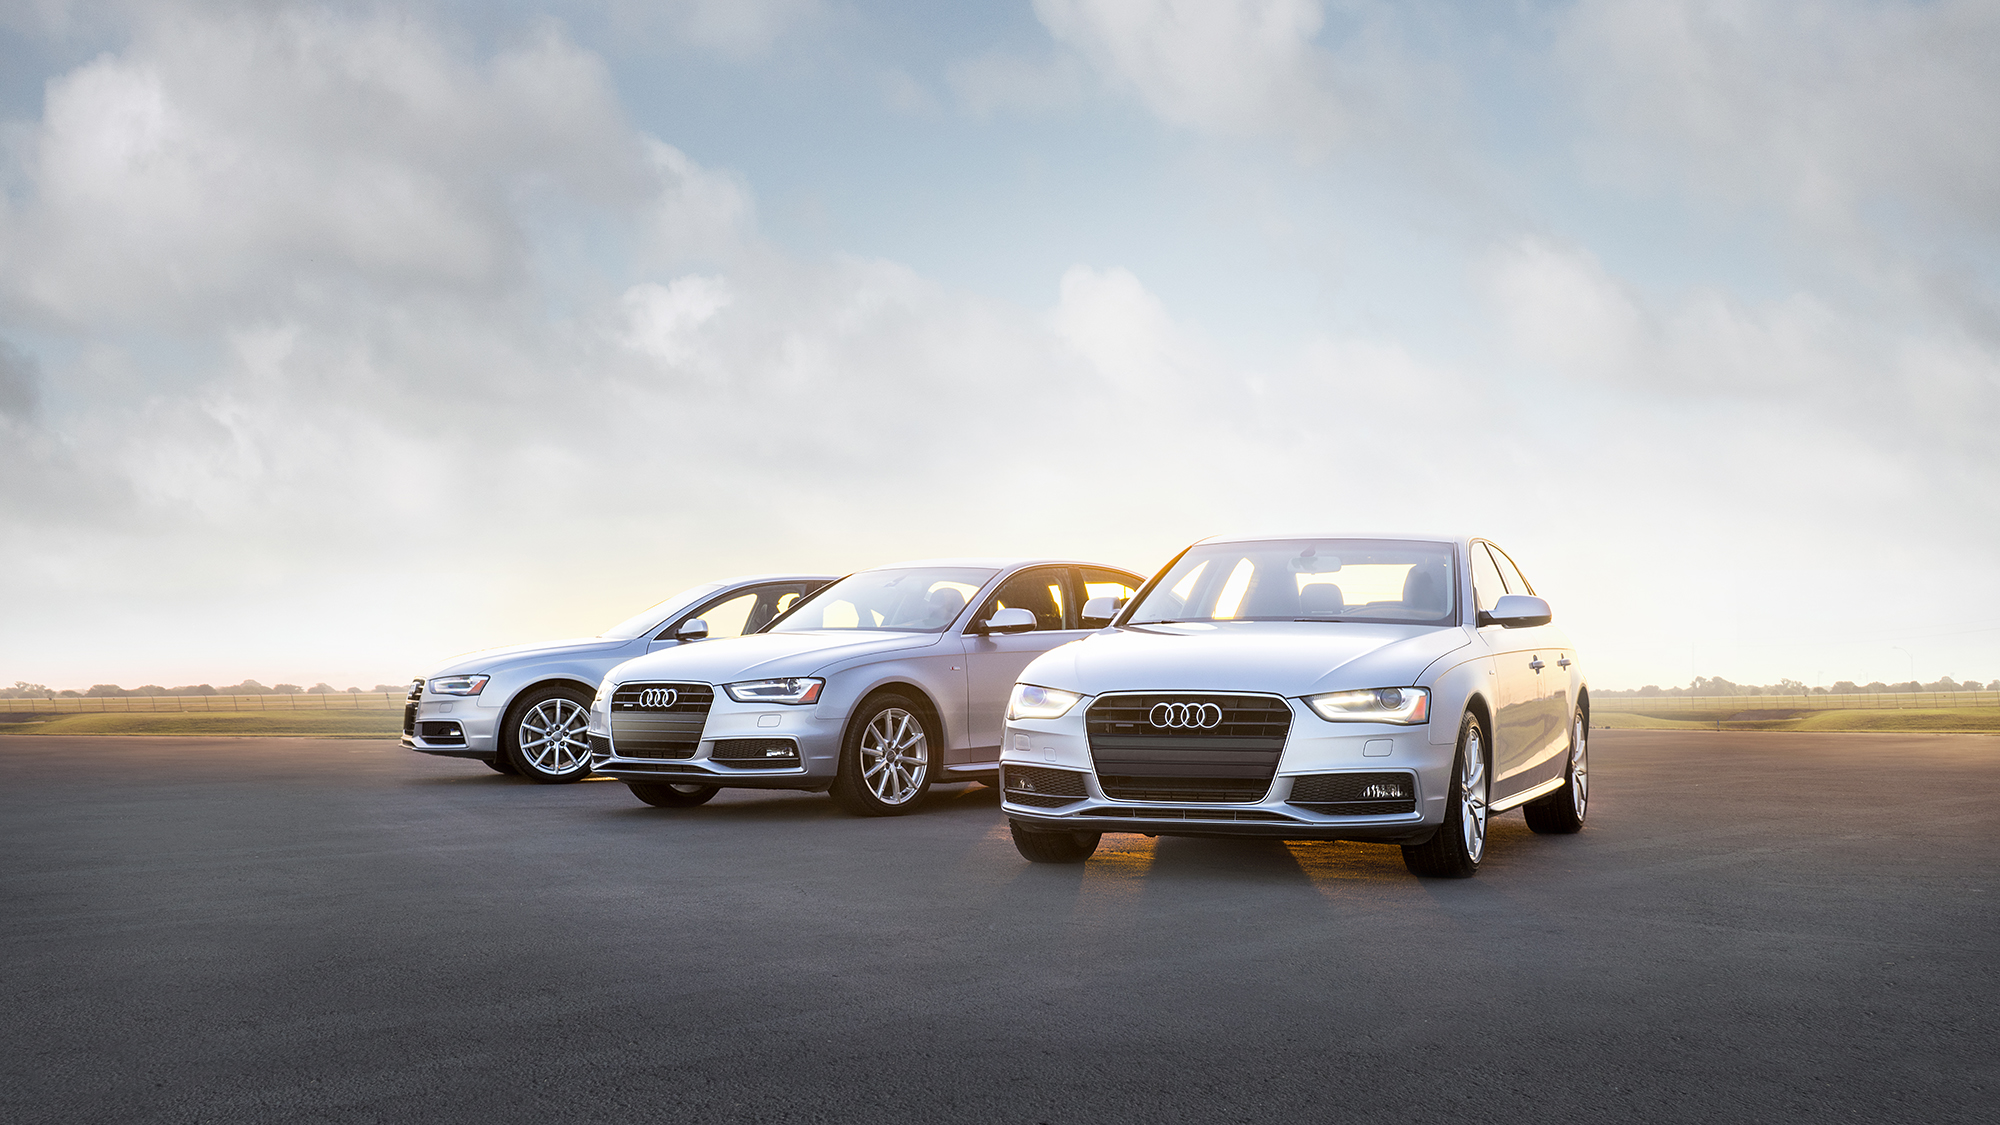 Silvercar Expands To Orlando Travel Weekly